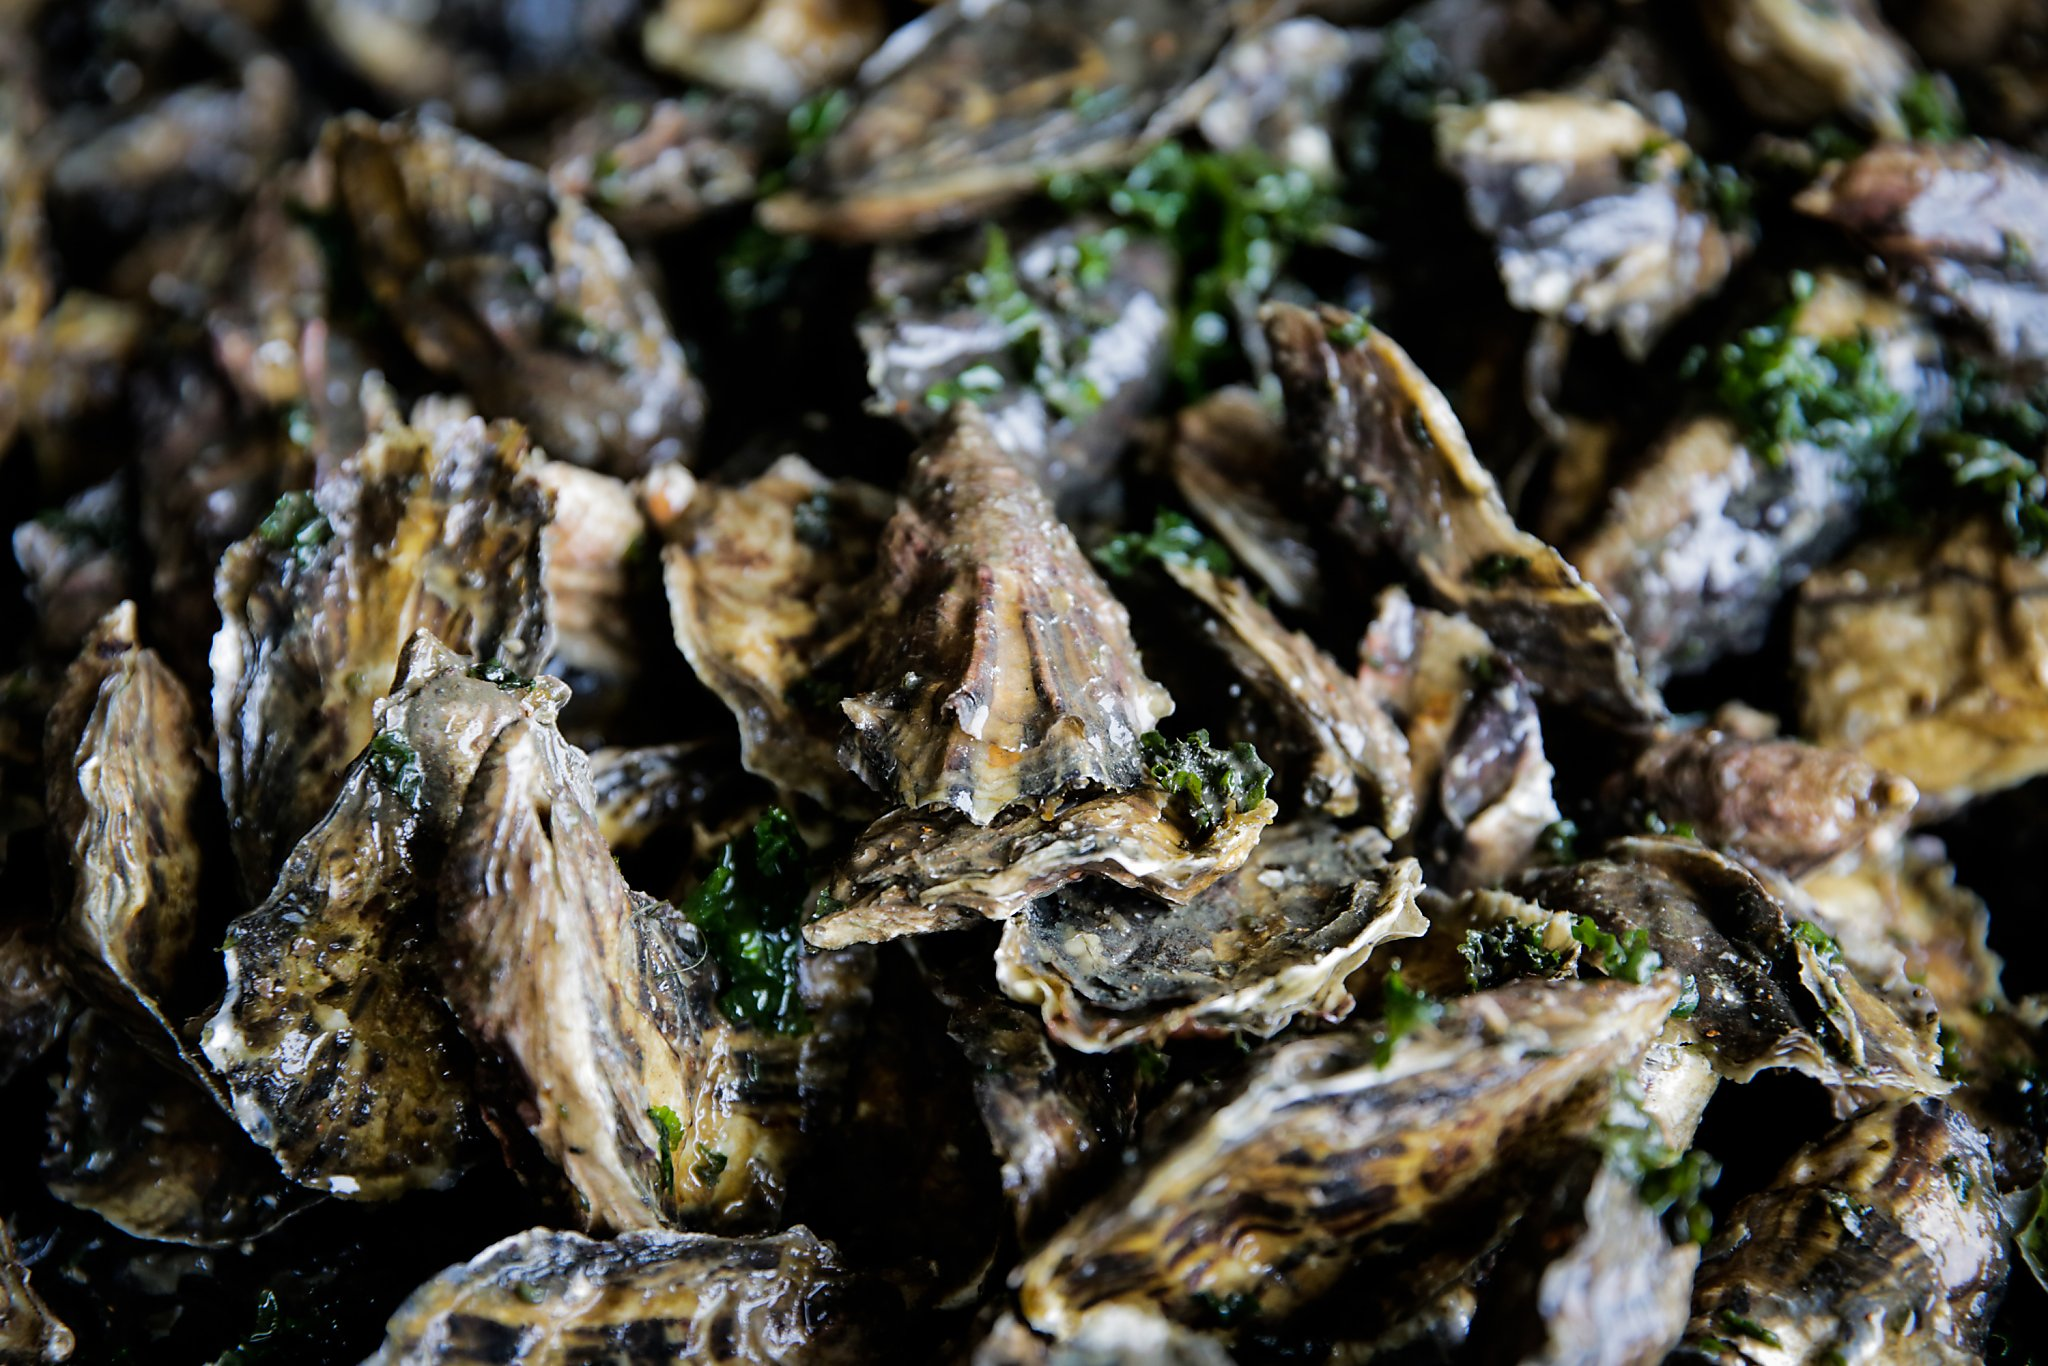 Paralyzing nerve toxin found in Bay Area shellfish